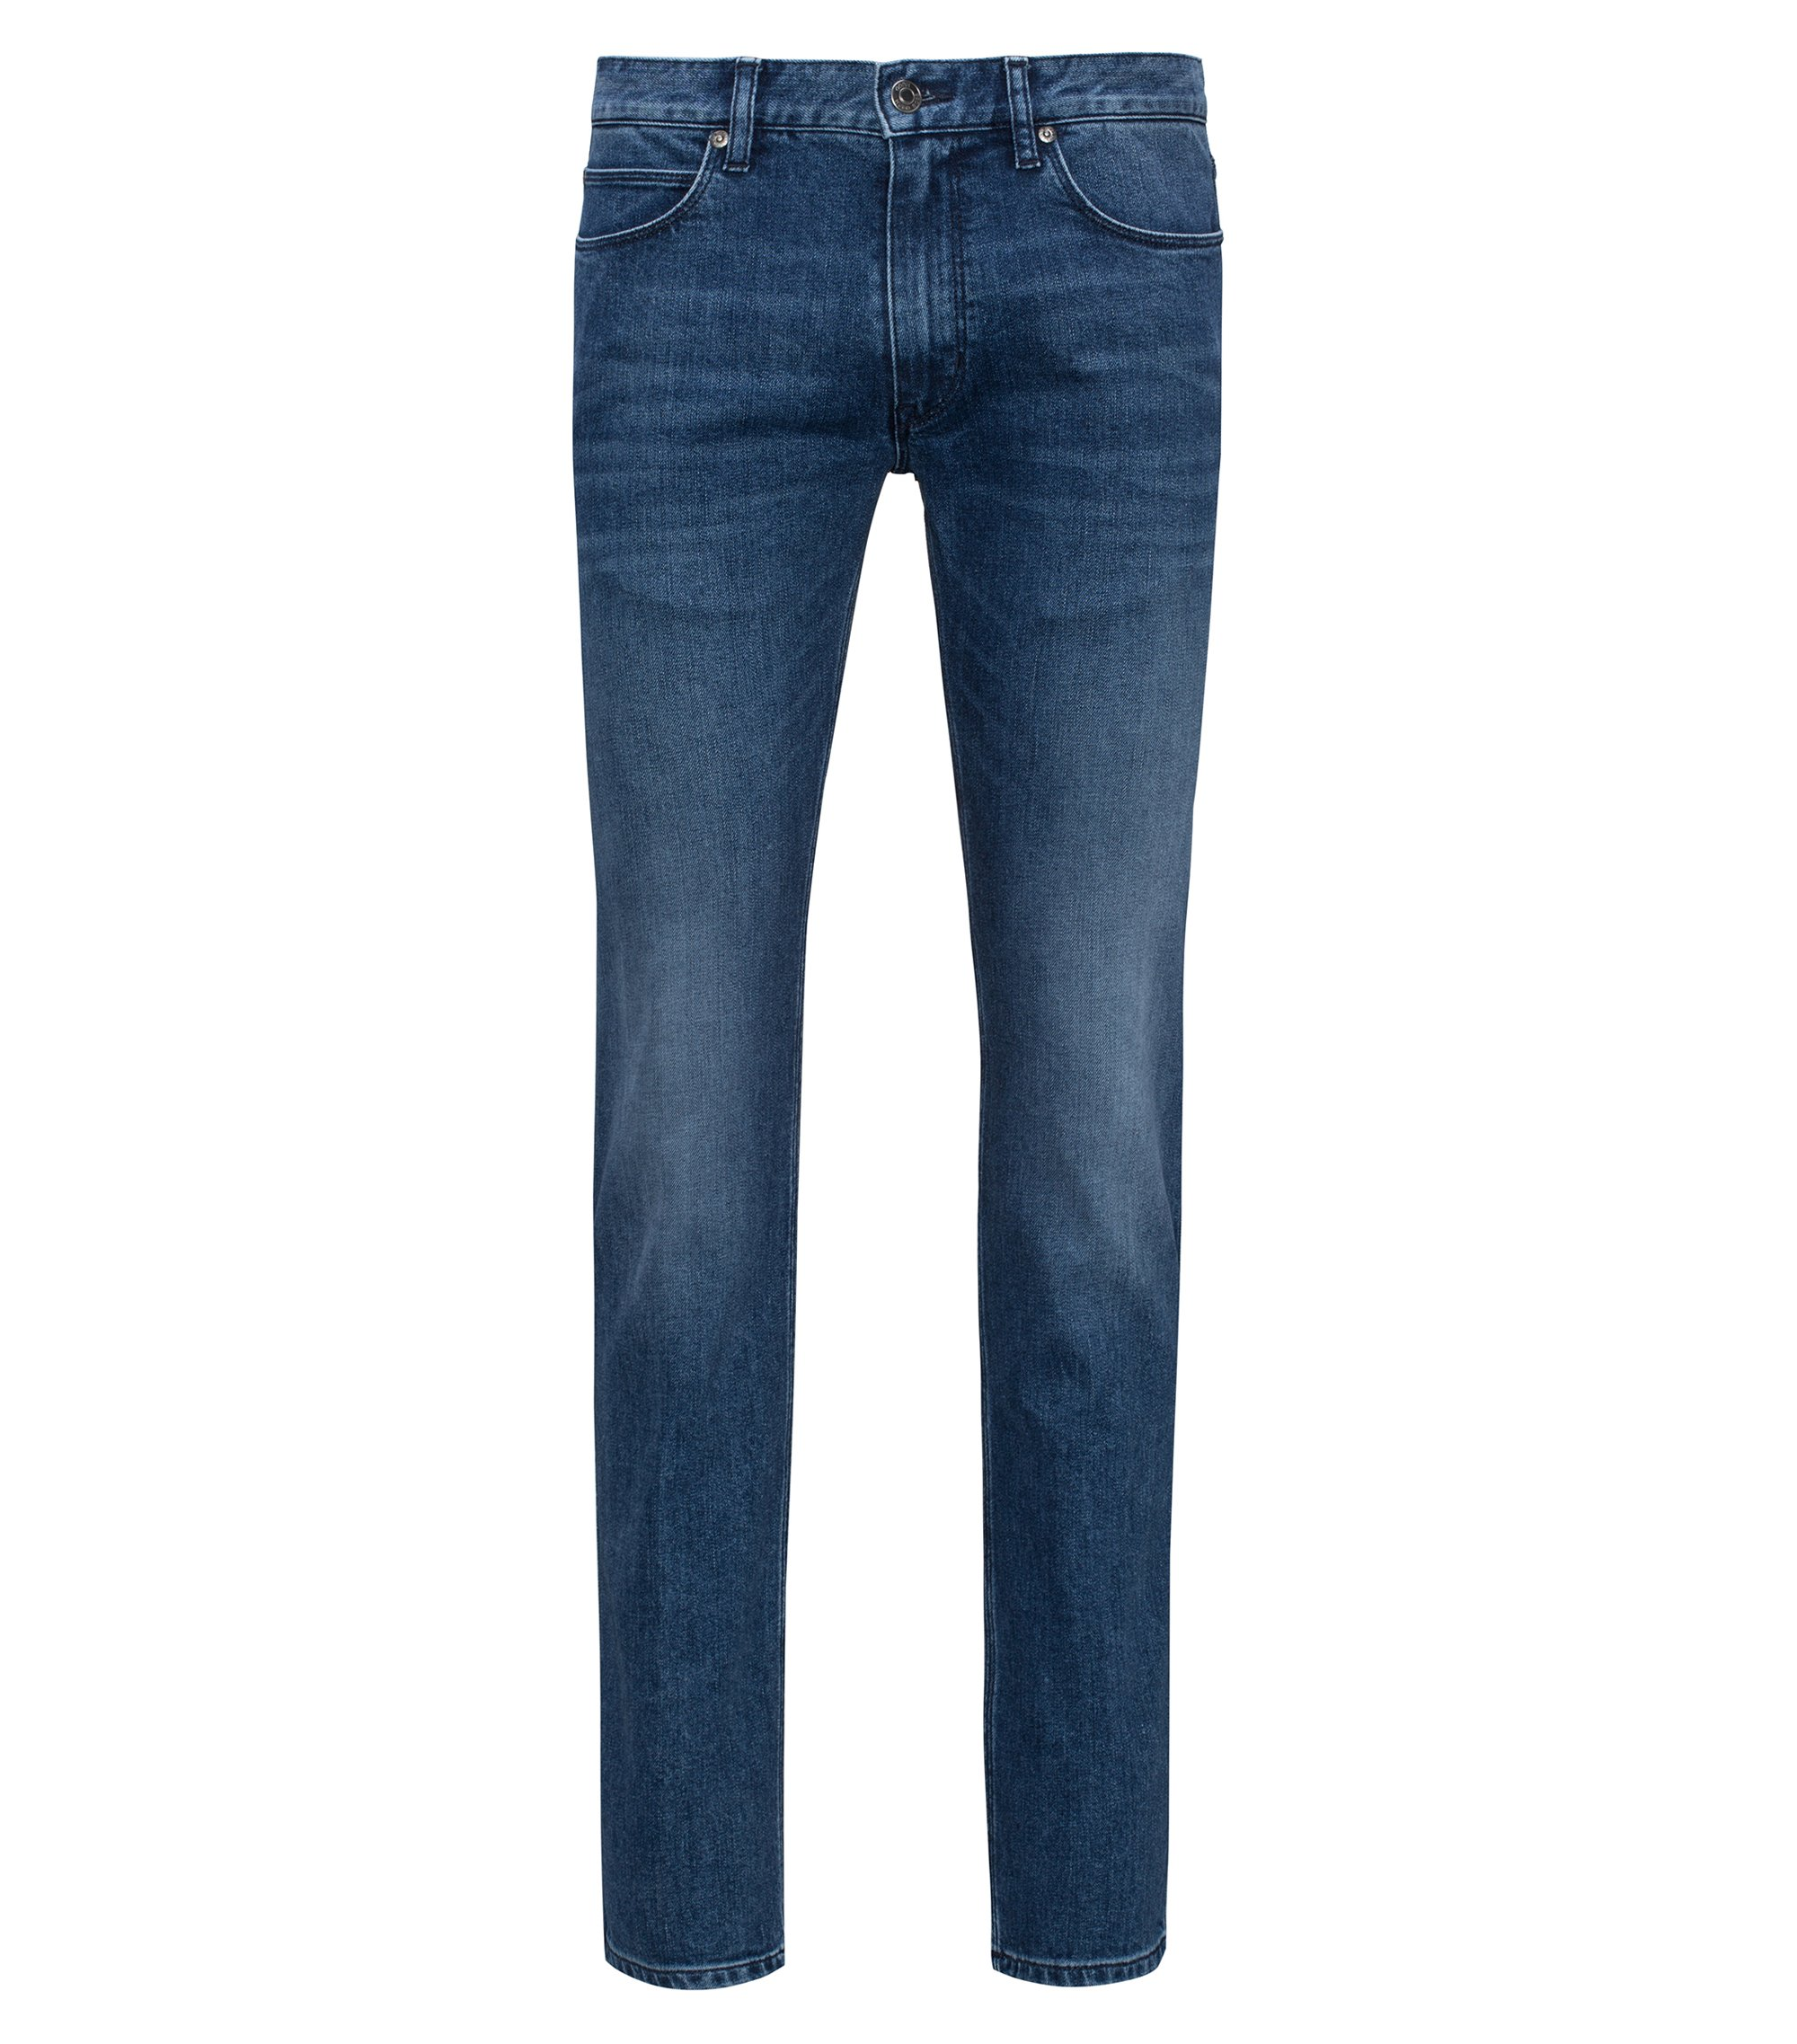 Stretch Cotton Jeans, Slim Fit | Hugo 708, Turquoise